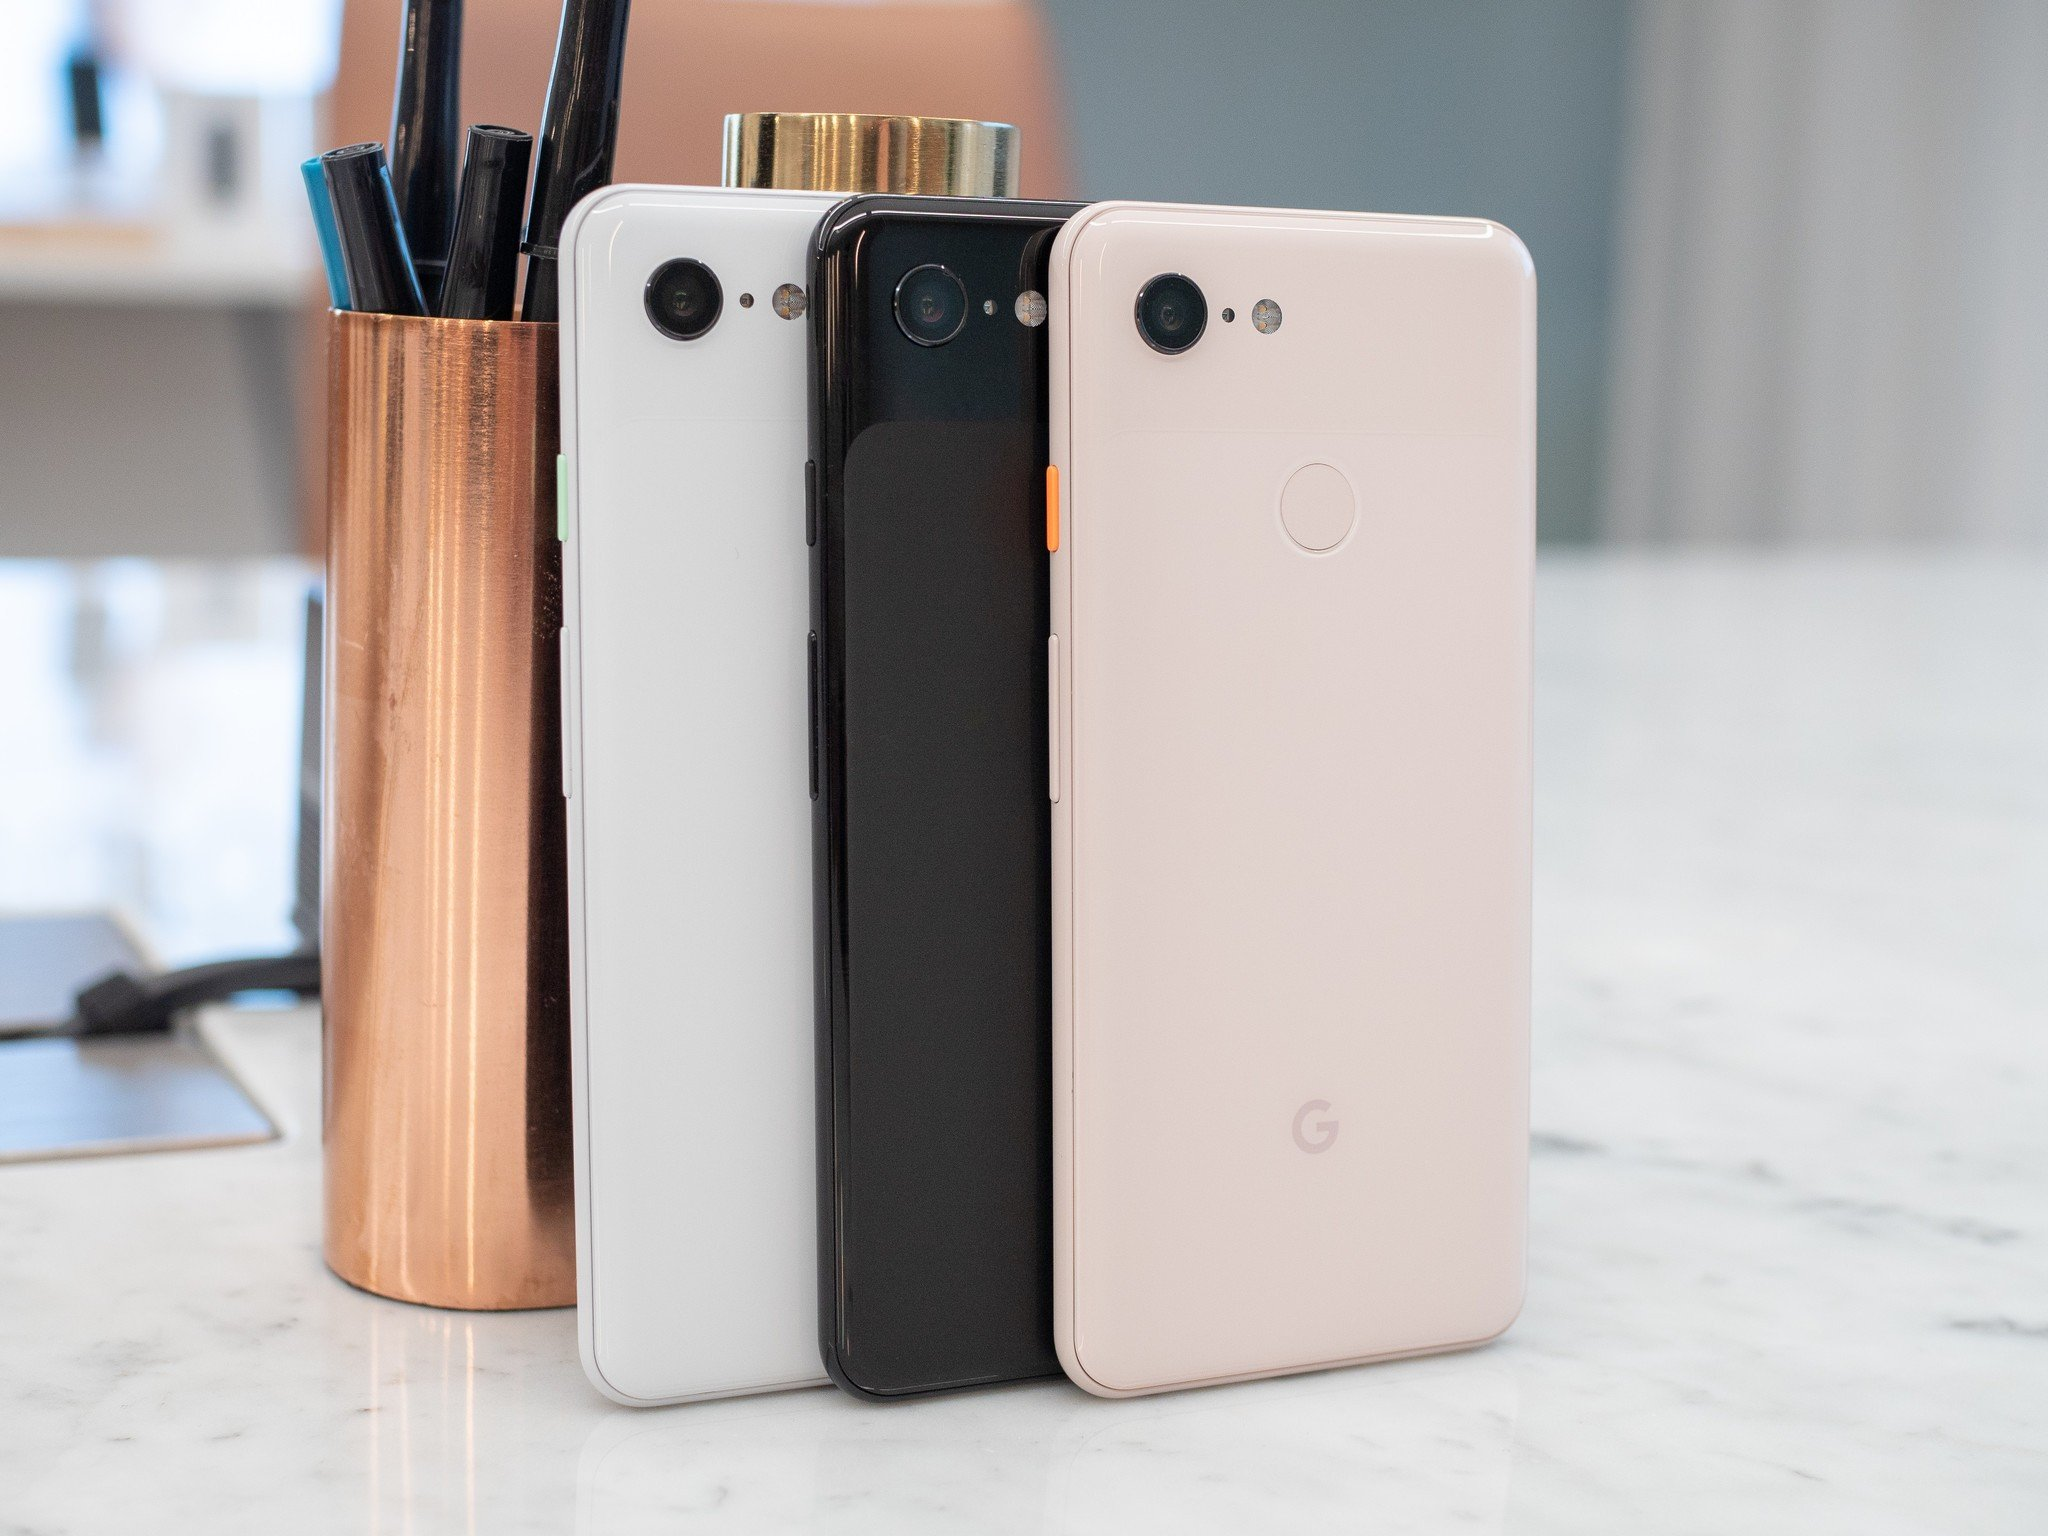 google s officially taken the wraps off its pixel 3 and 3 xl smartphones the two handsets look exactly like what we saw in all the early